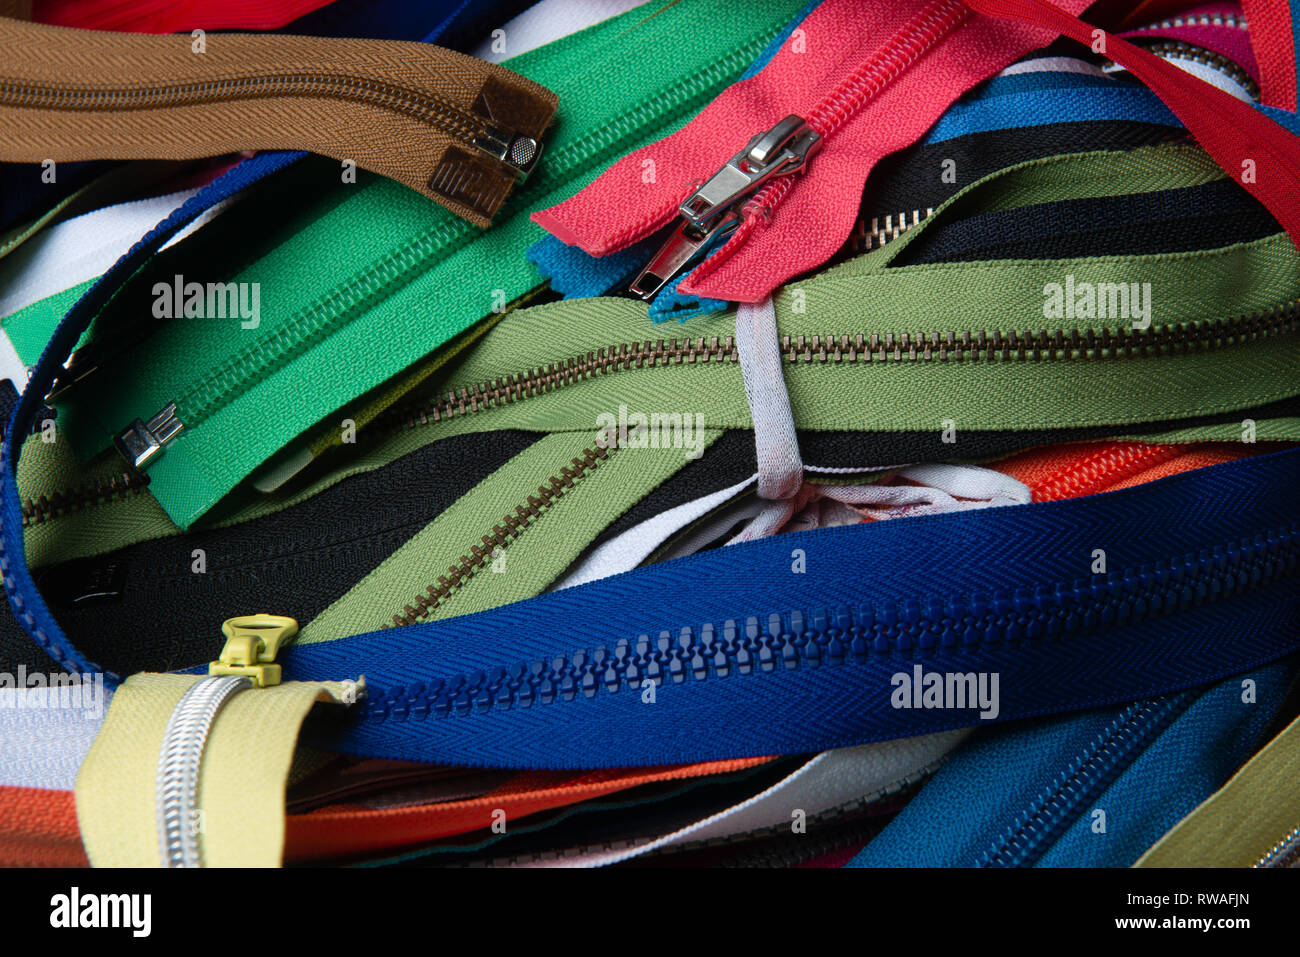 Bunch of multicolored zippers - Stock Image